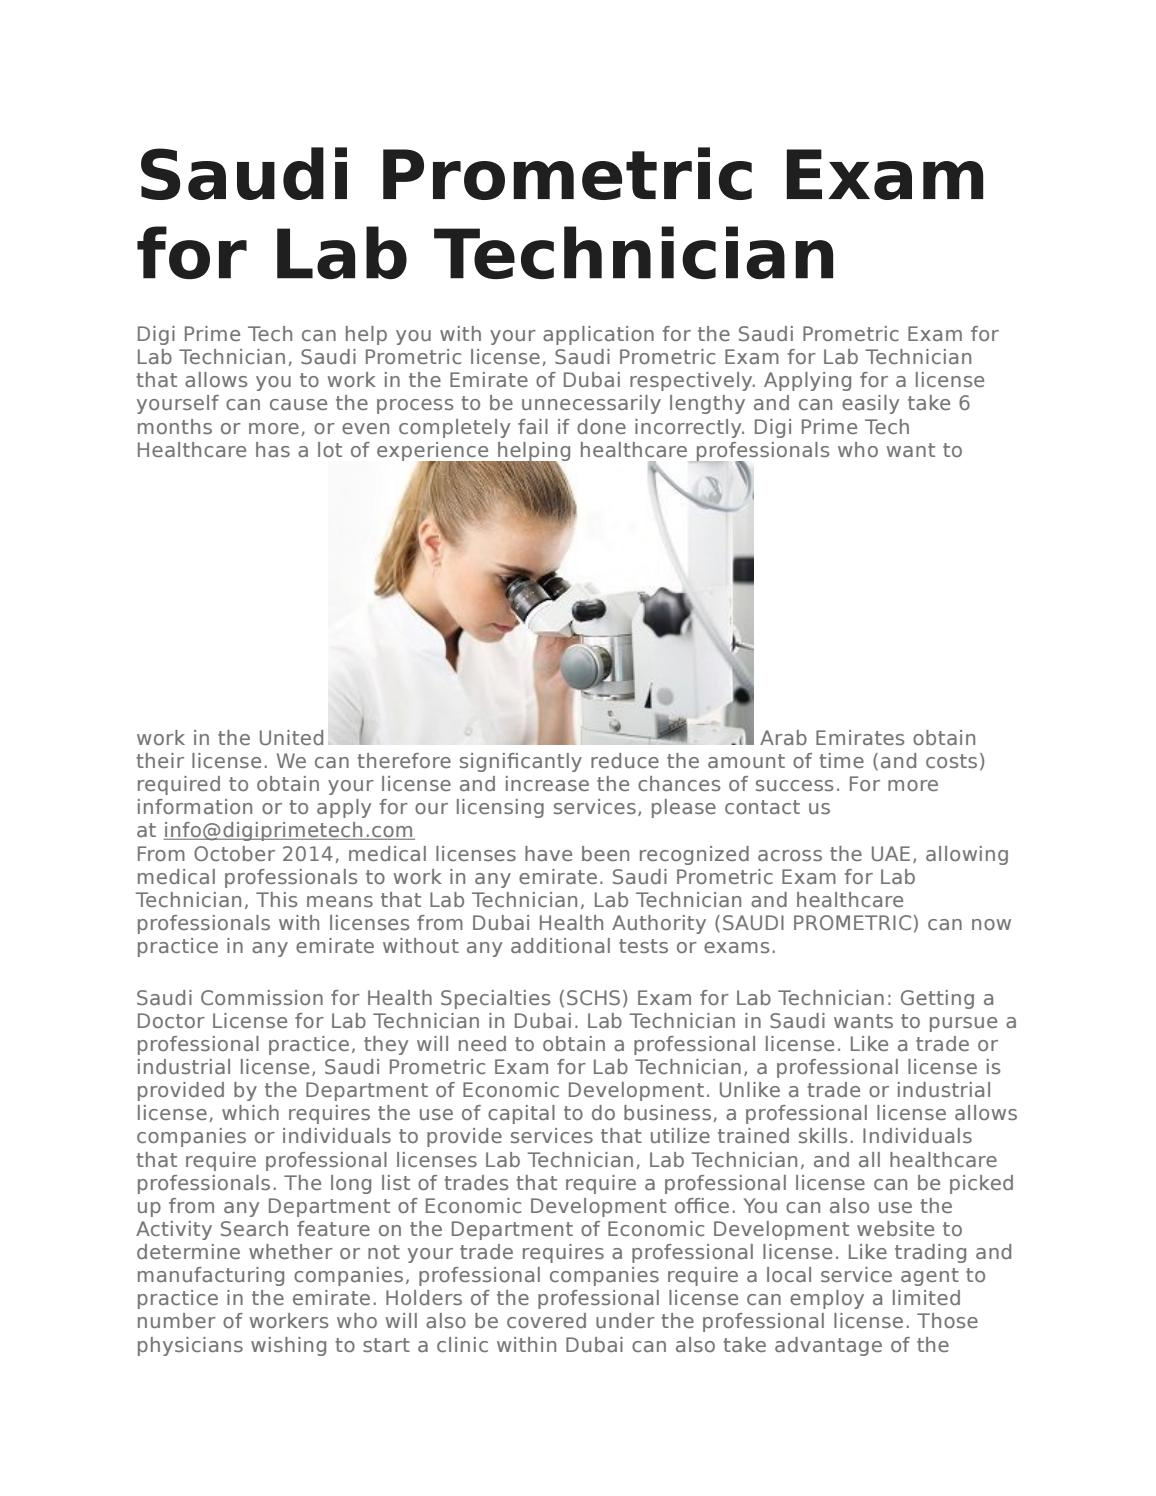 oman prometric exam, oman prometric exam registrtion for Lab